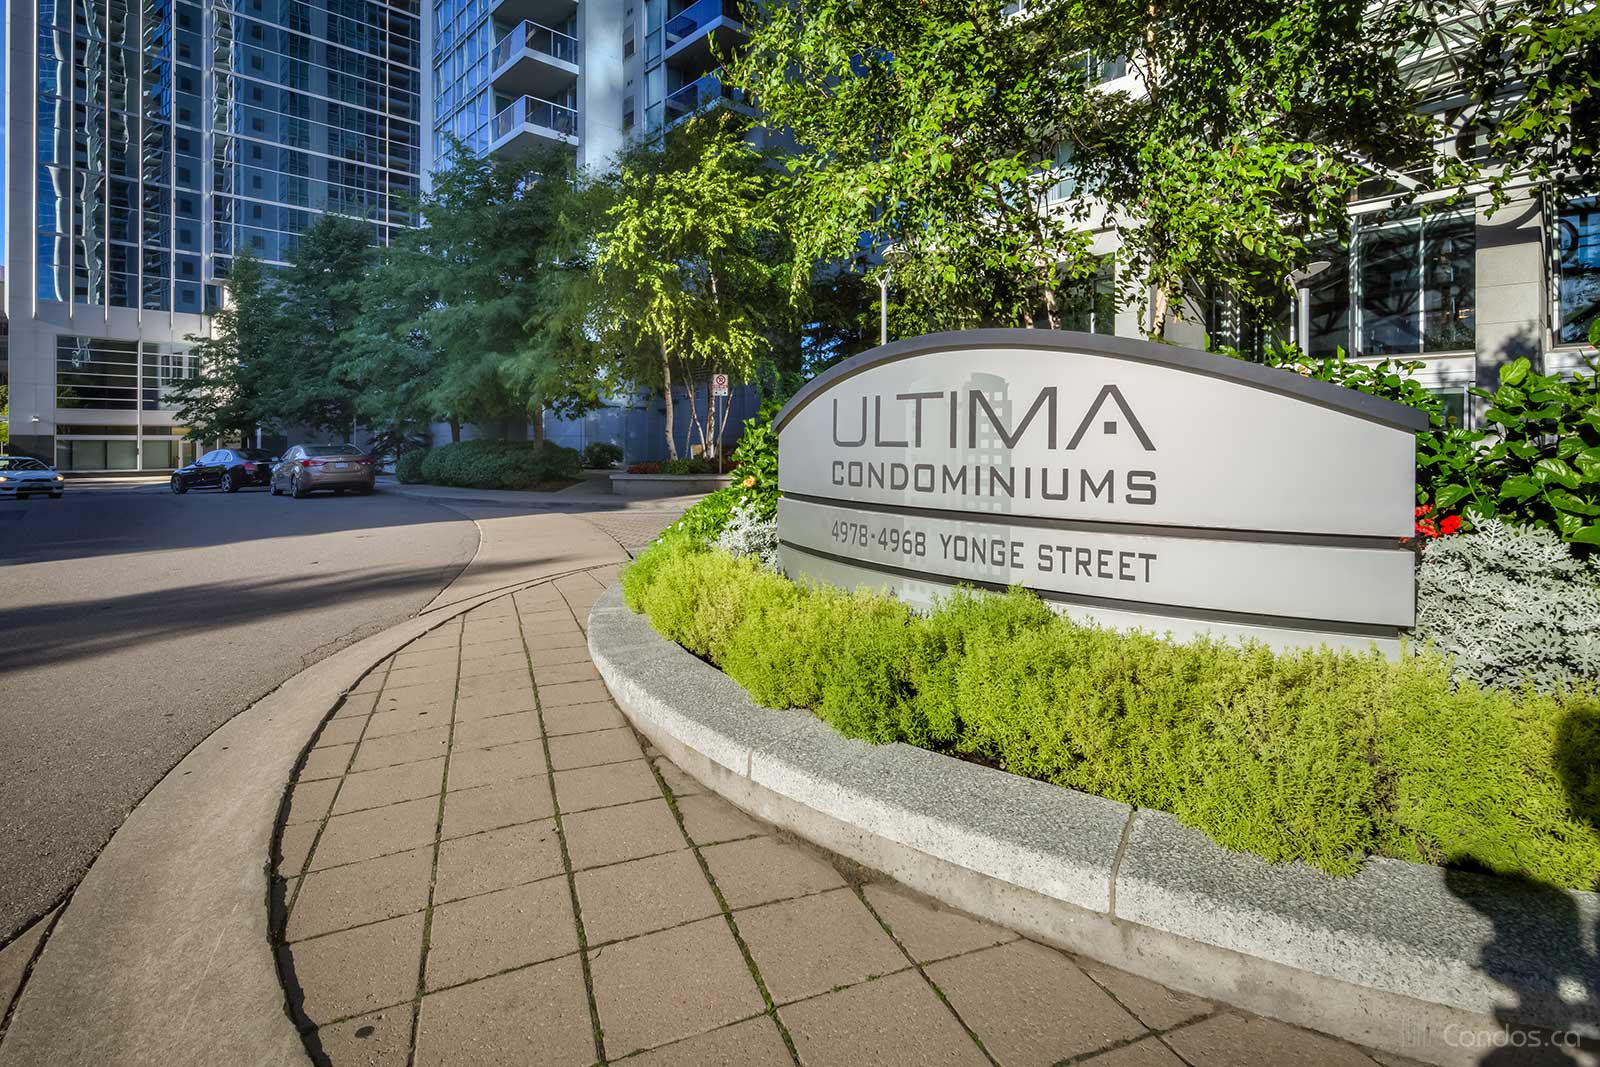 Ultima at Broadway North Tower at 4978 Yonge St, Toronto 1